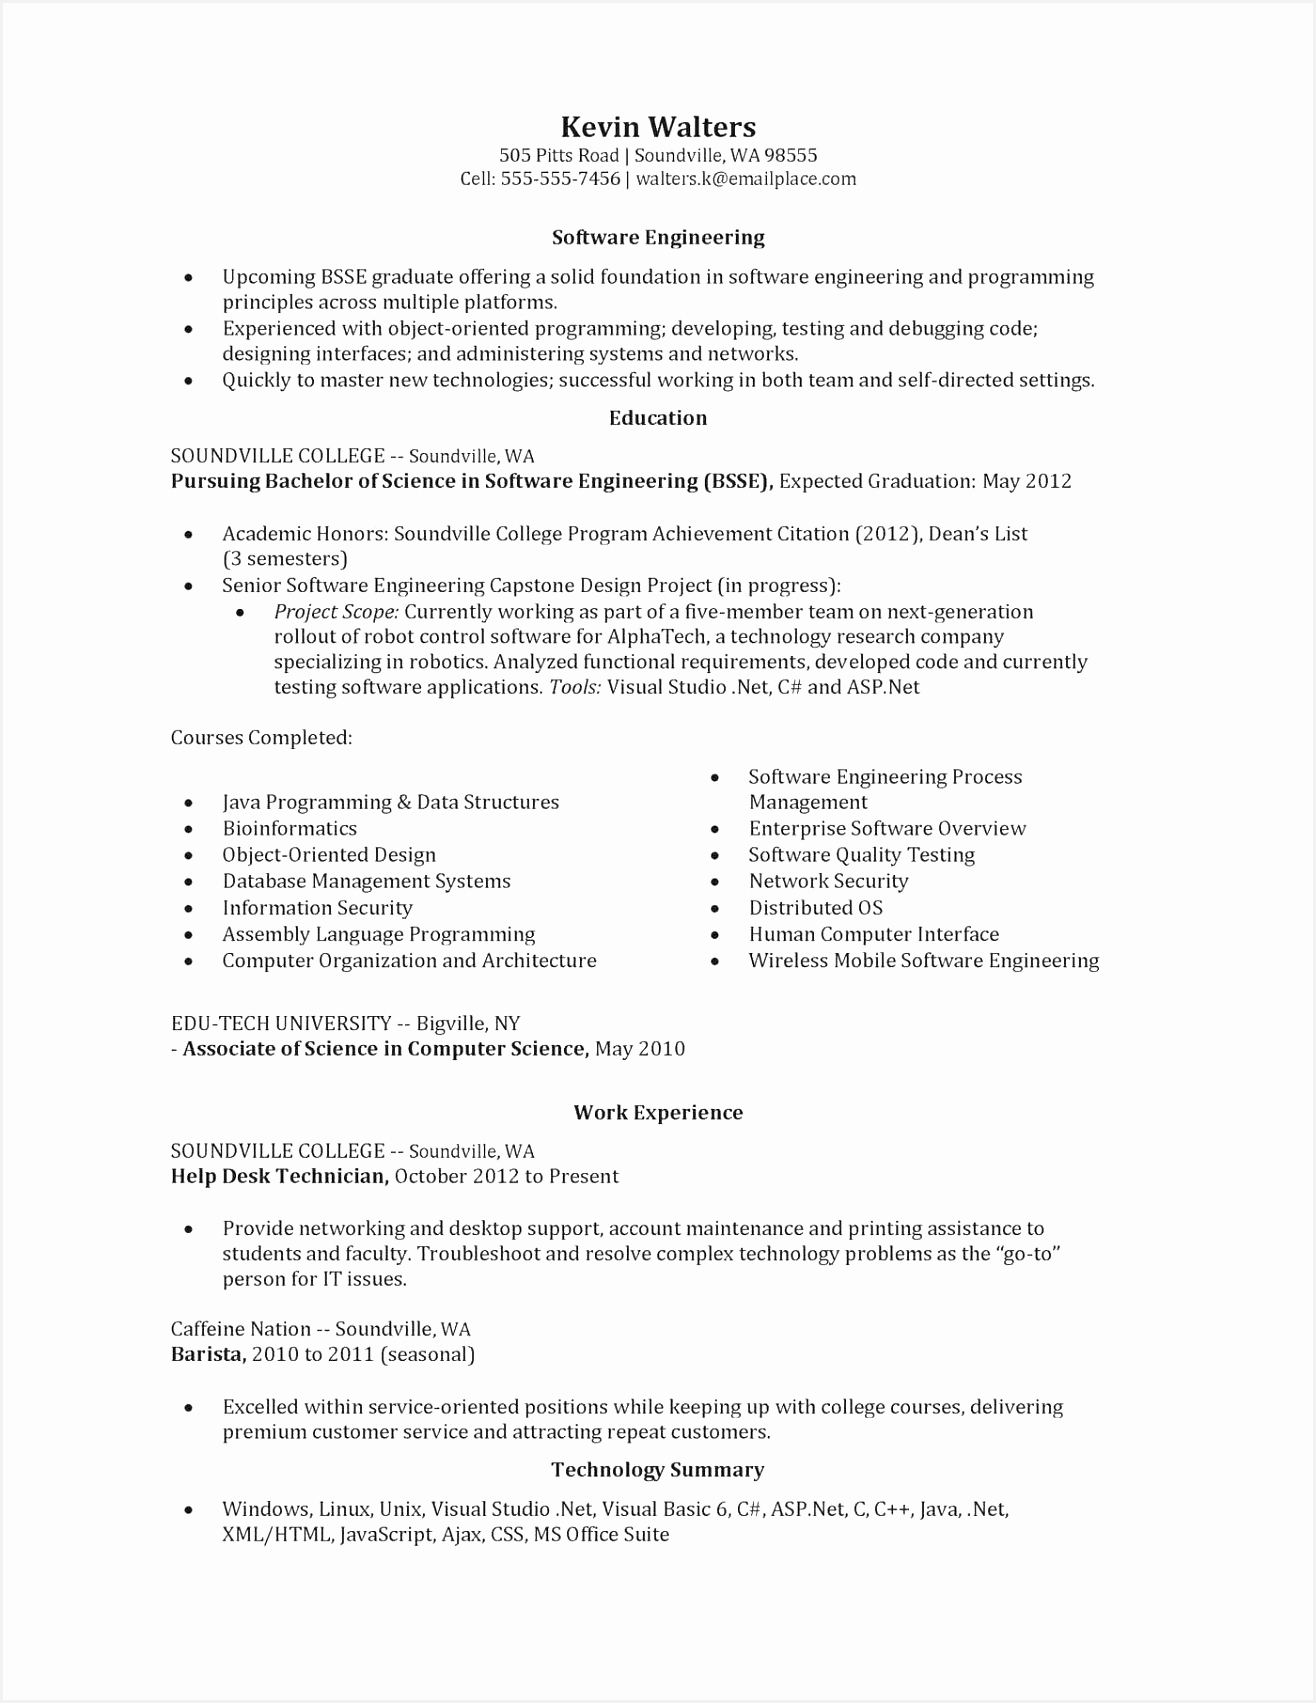 Sample Bank Management Resume Tcrrr New Banking Resume Sample Luxury Lpn Resume Sample New Line Producer Of Sample Bank Management Resume Ajrfd New Sample Management Resume Unique Technical Manager Resume